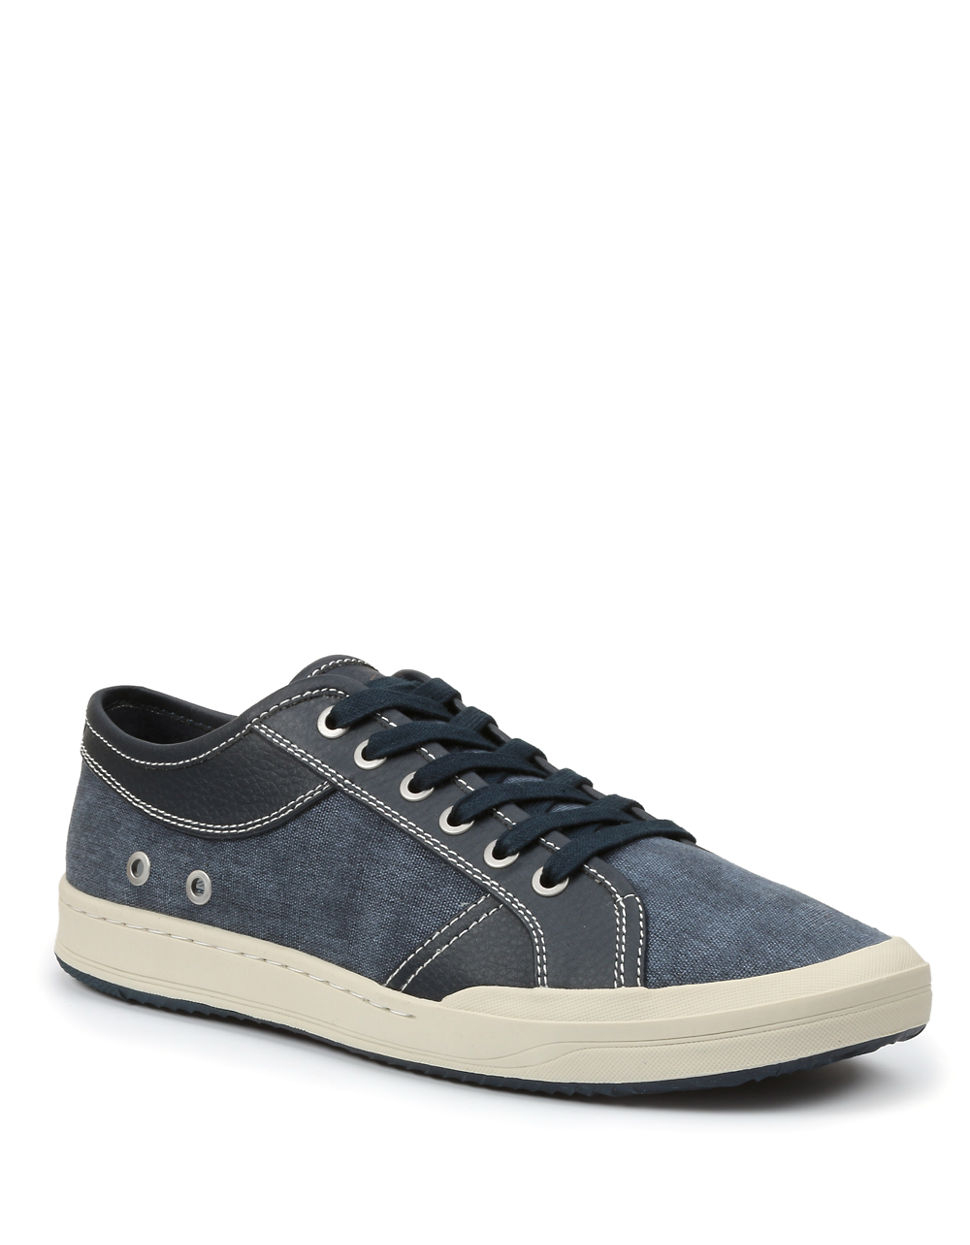 lyst gh bass amp co holton canvas sneakers in blue for men